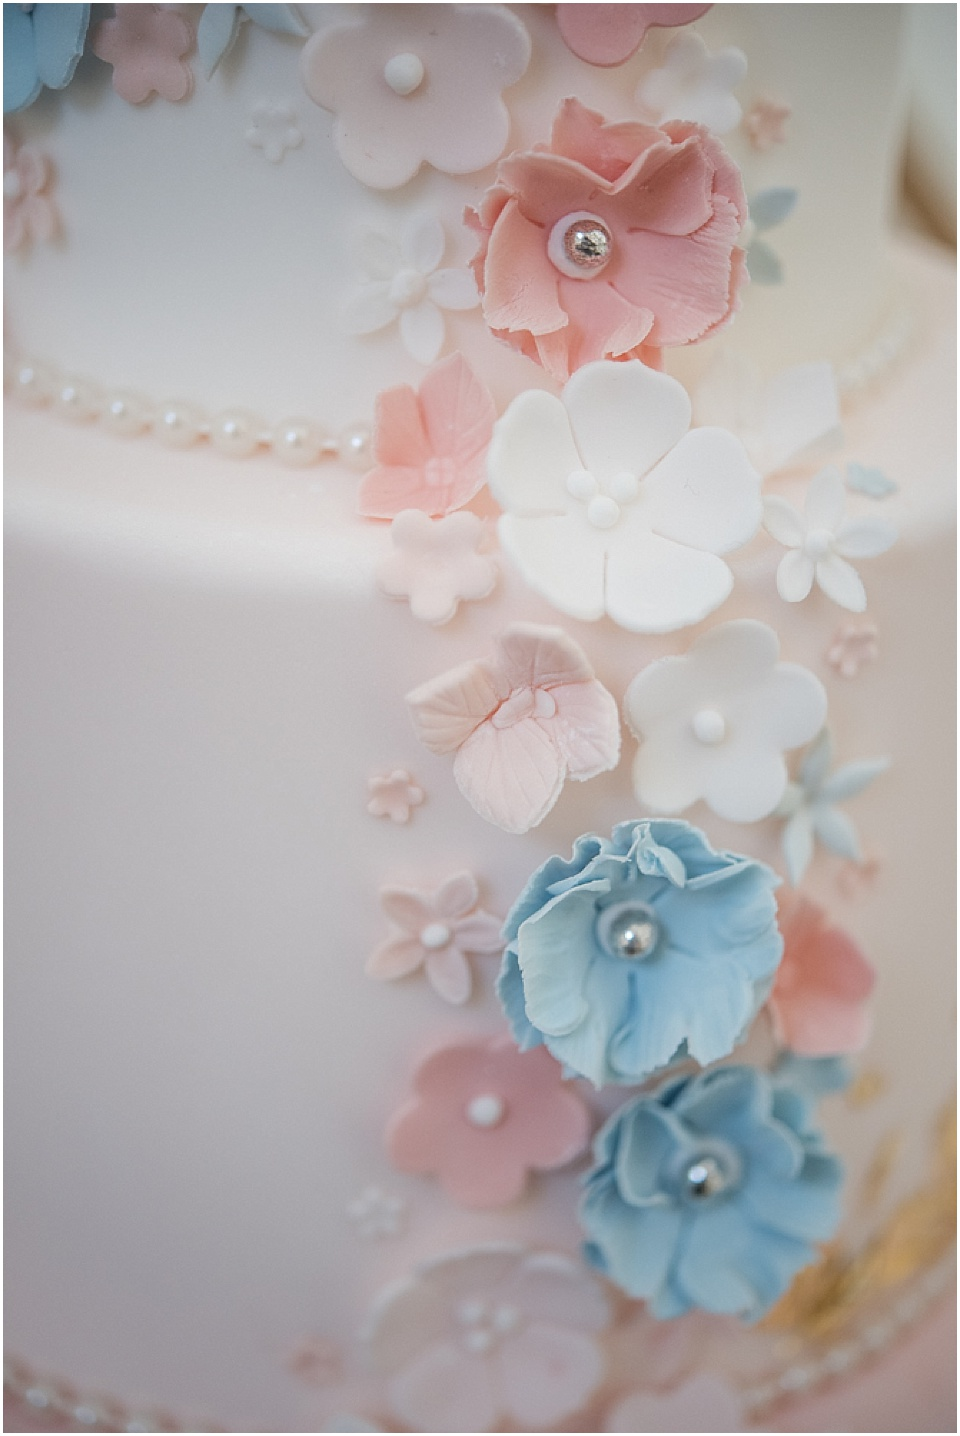 Rose-Quartz-Styled-Shoot-Jane-Beadnell-Photography-www.nubride.com_0394.jpg